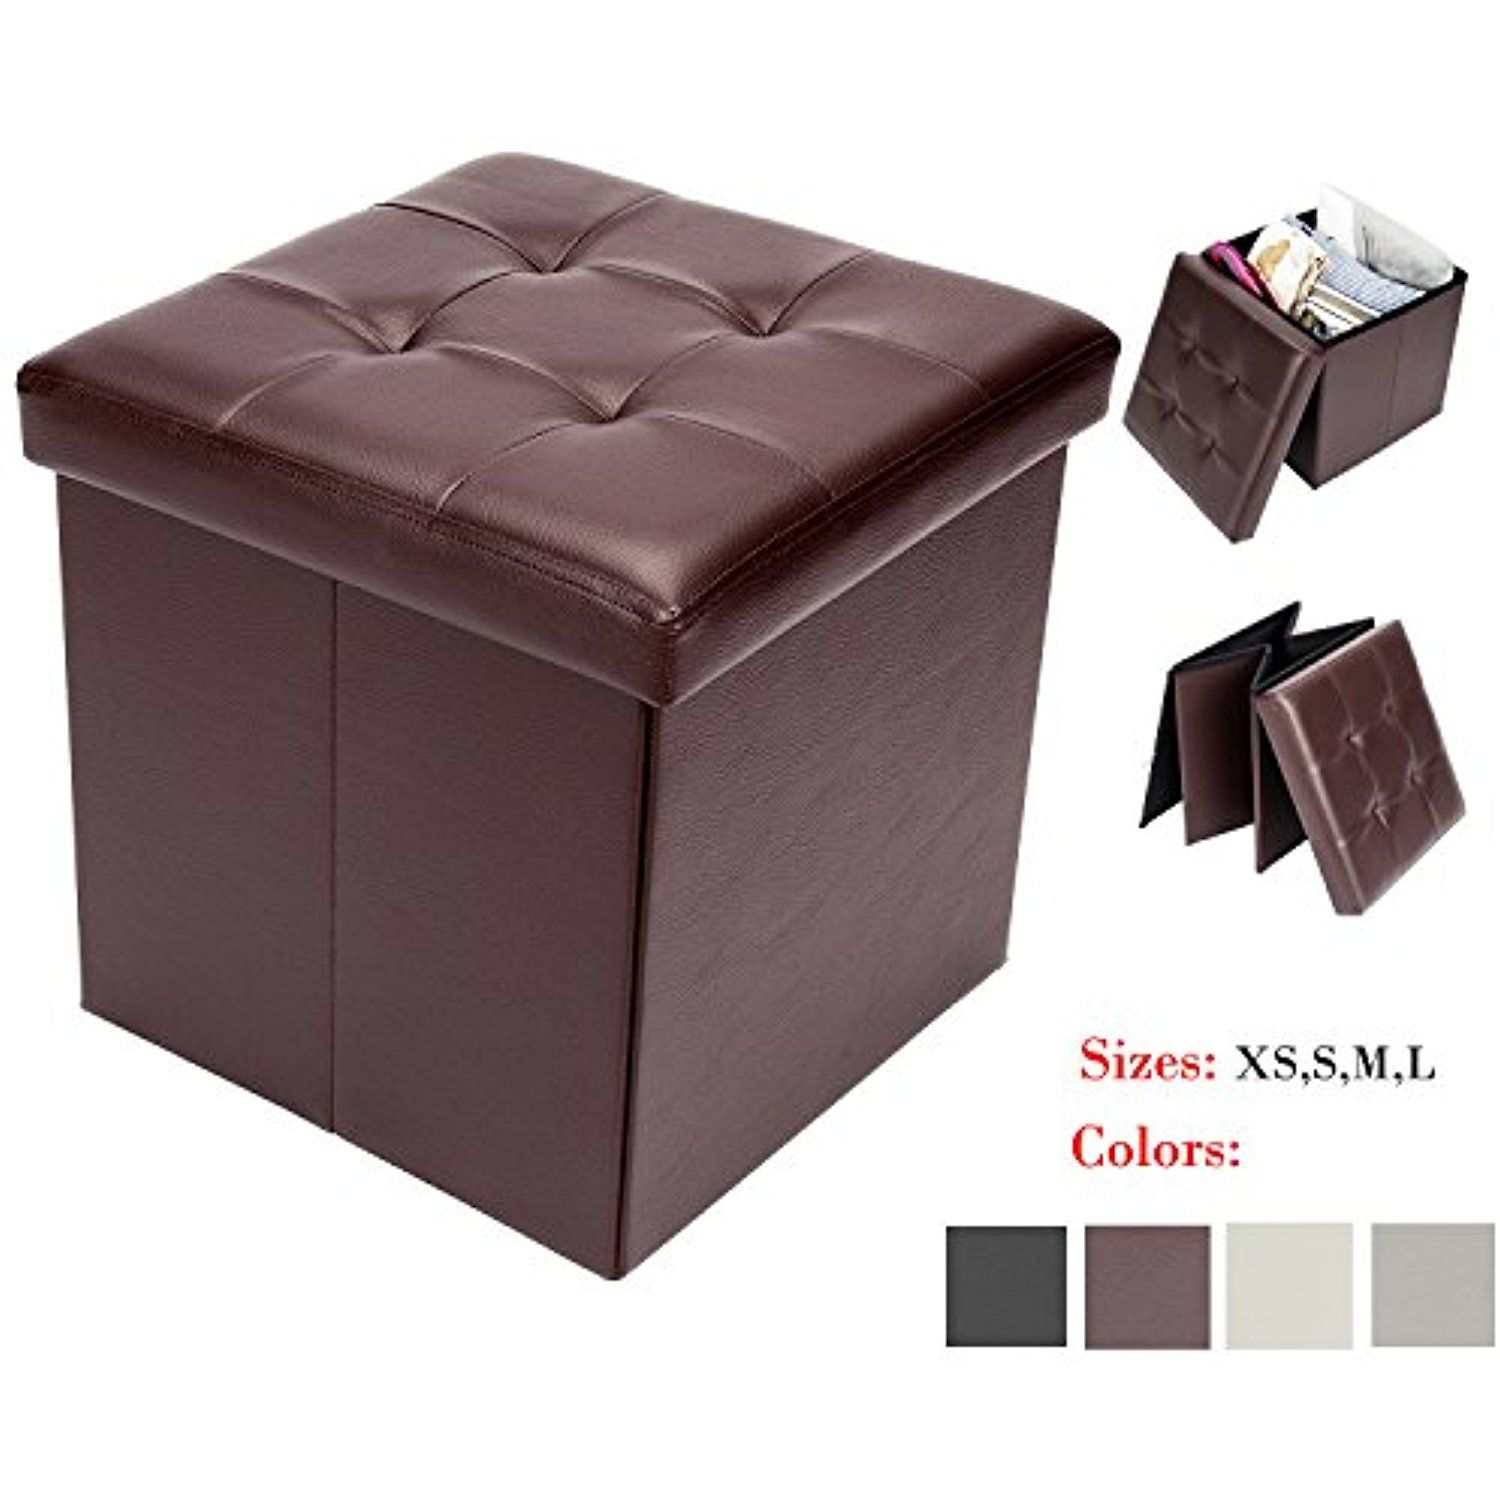 Bonnlo Leather Folding Organizer Seat Storage Ottoman Bench Footrest Stool Coffee Table Cube Port Folding Storage Ottoman Storage Cube Ottoman Storage Ottoman